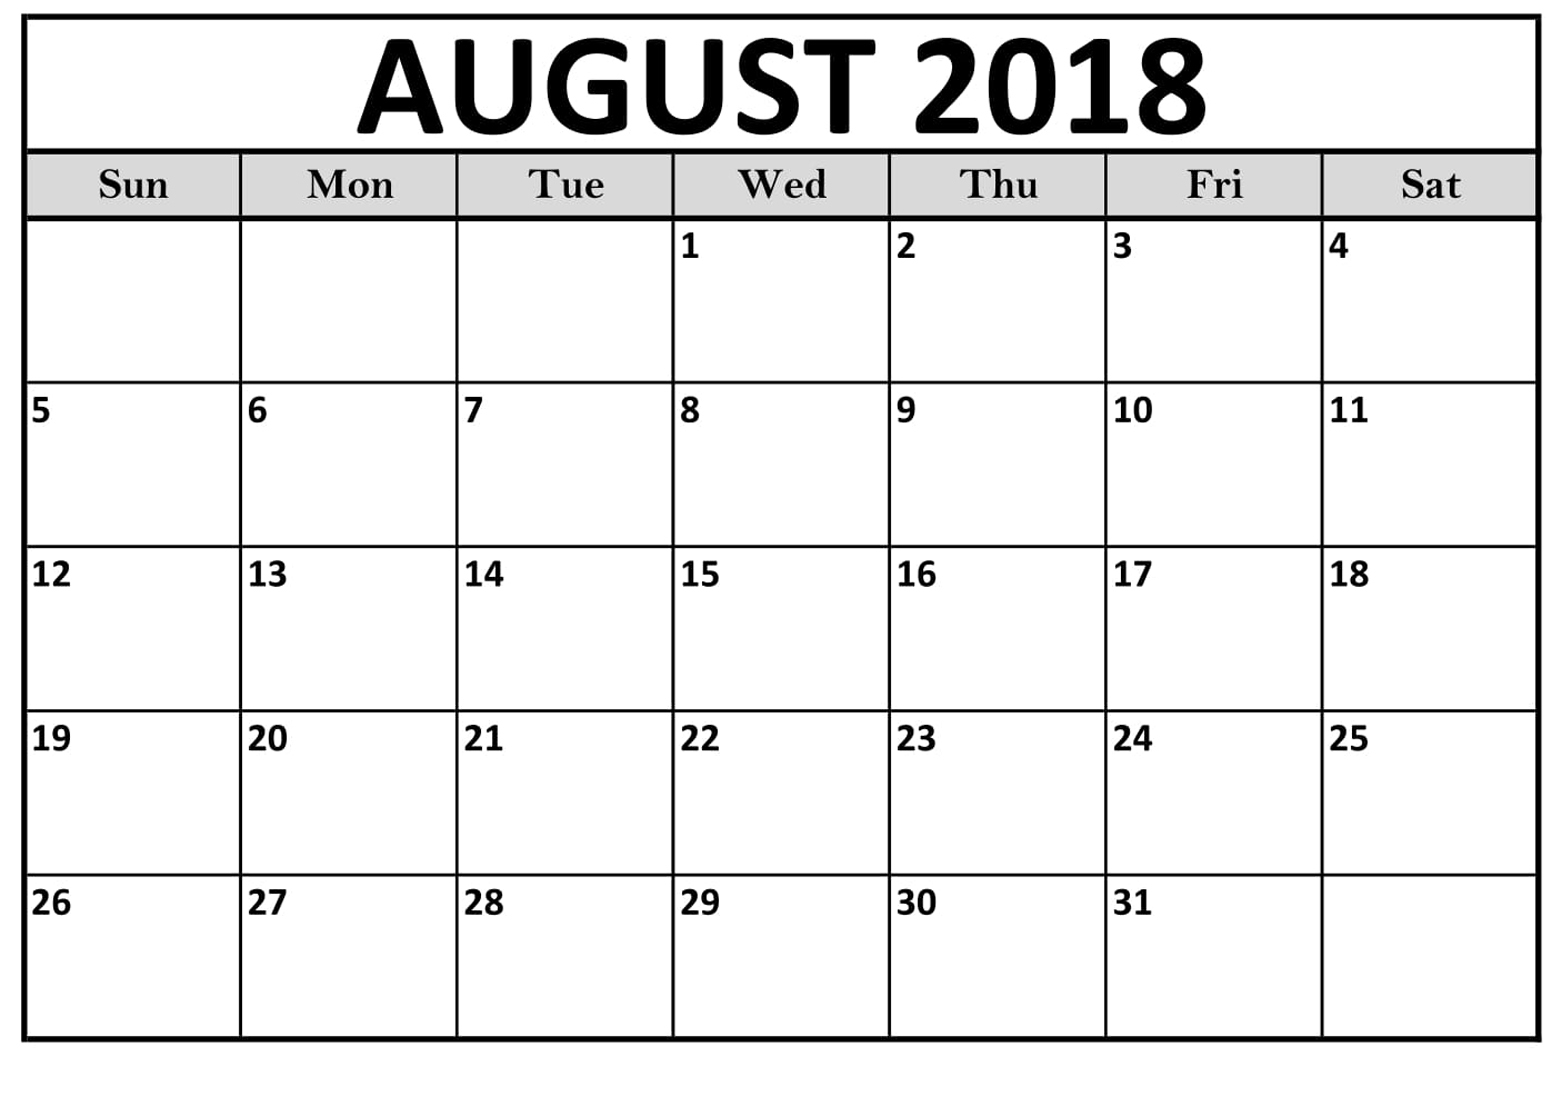 printable calendar august 2018 uk printable calendar templates Calendar August 2018 Printable Uk erdferdf